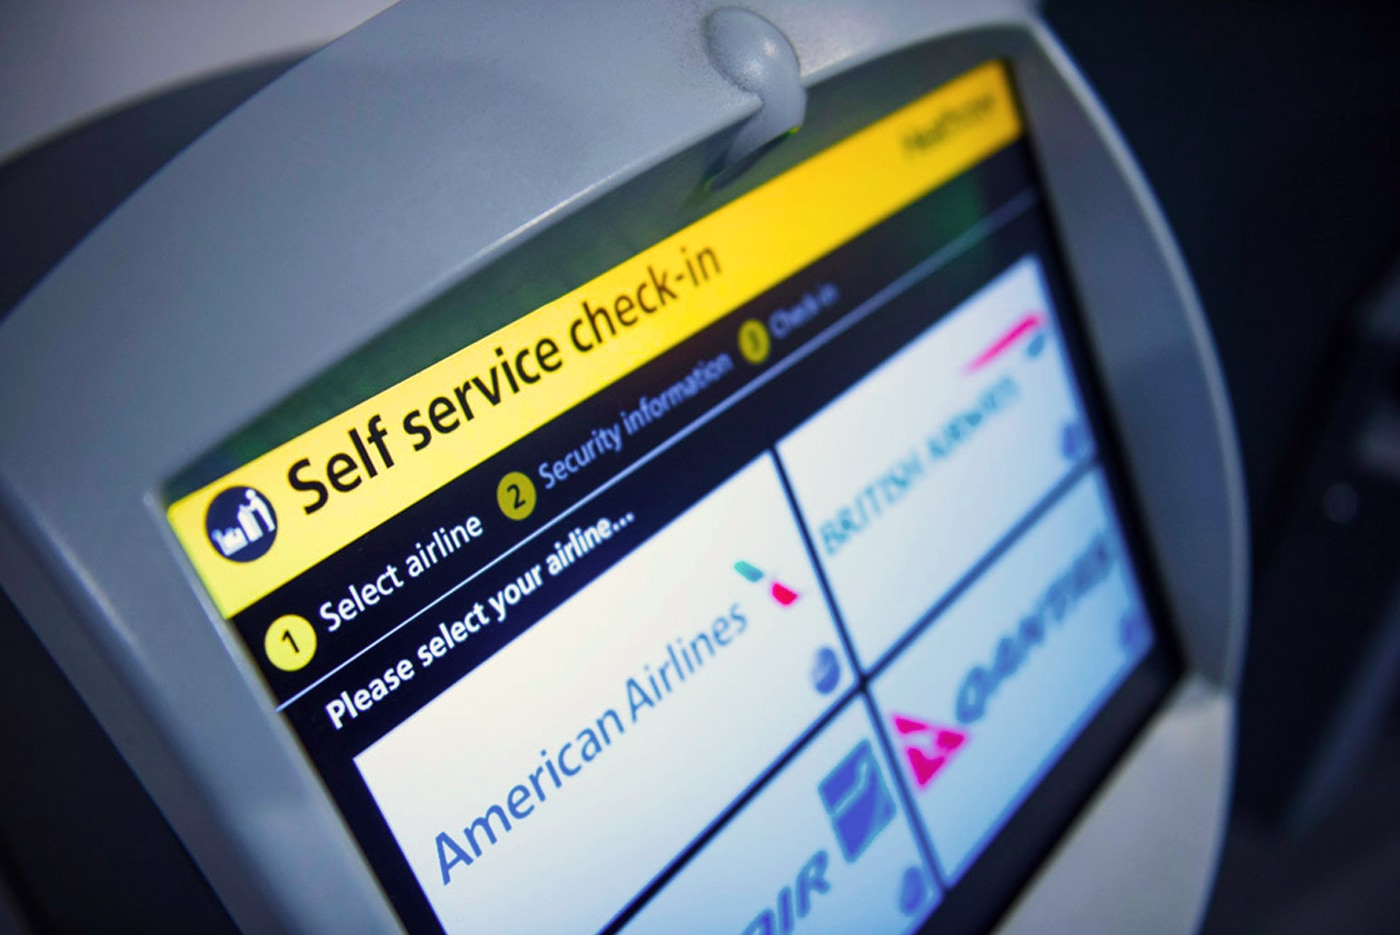 Heathrow's self service check-in